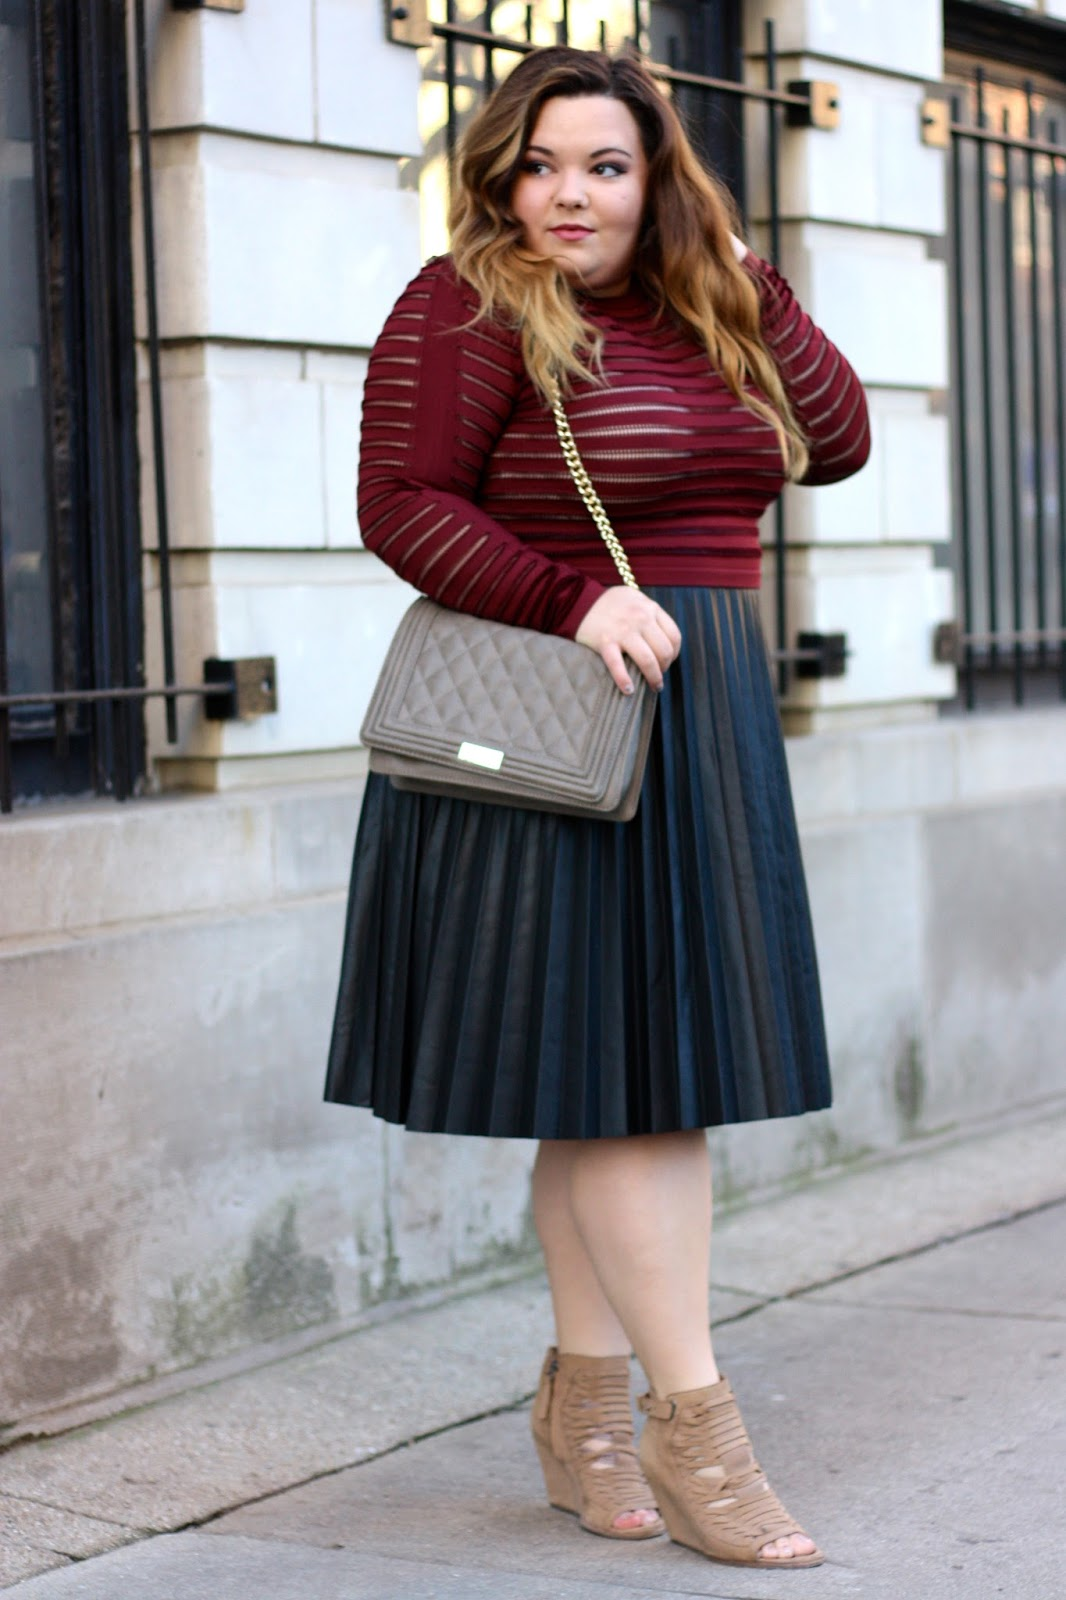 Leather Pleats Natalie In The City A Chicago Plus Size Fashion Blog By Natalie Craig